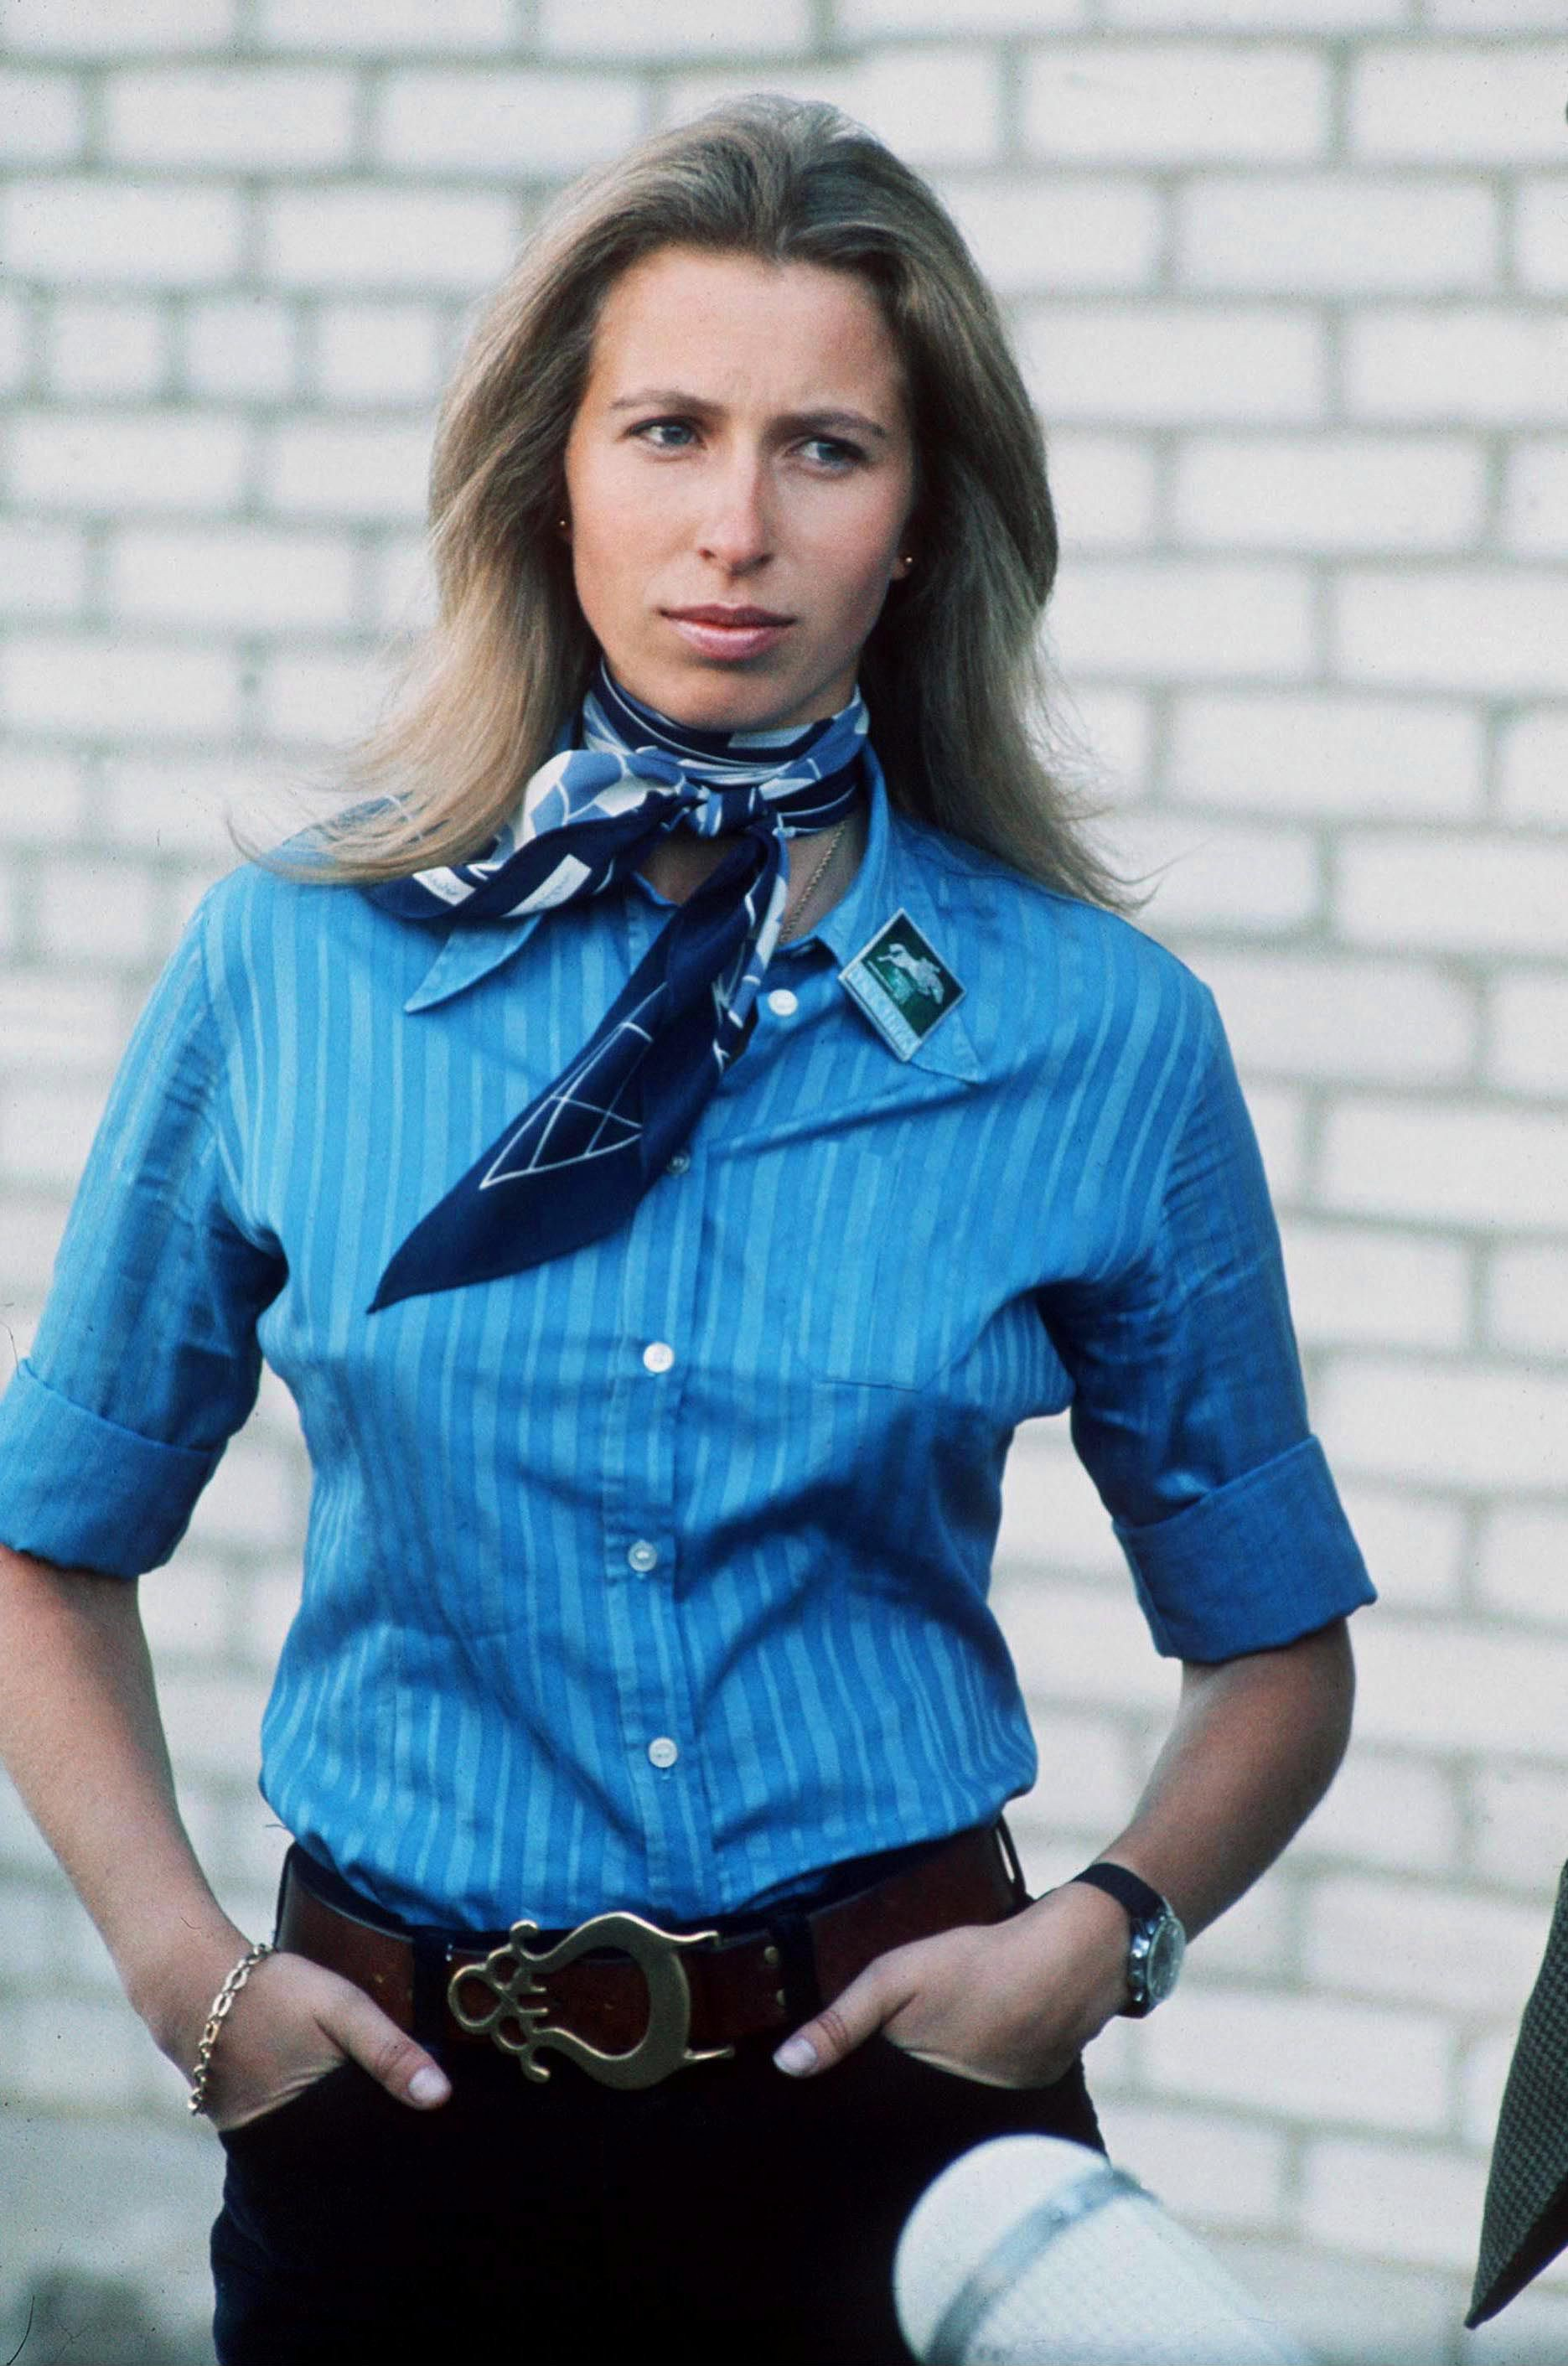 princess-anne-dressed-casually-in-shirt-and-jeans-in-kiev-news-photo-52101090-1529938032